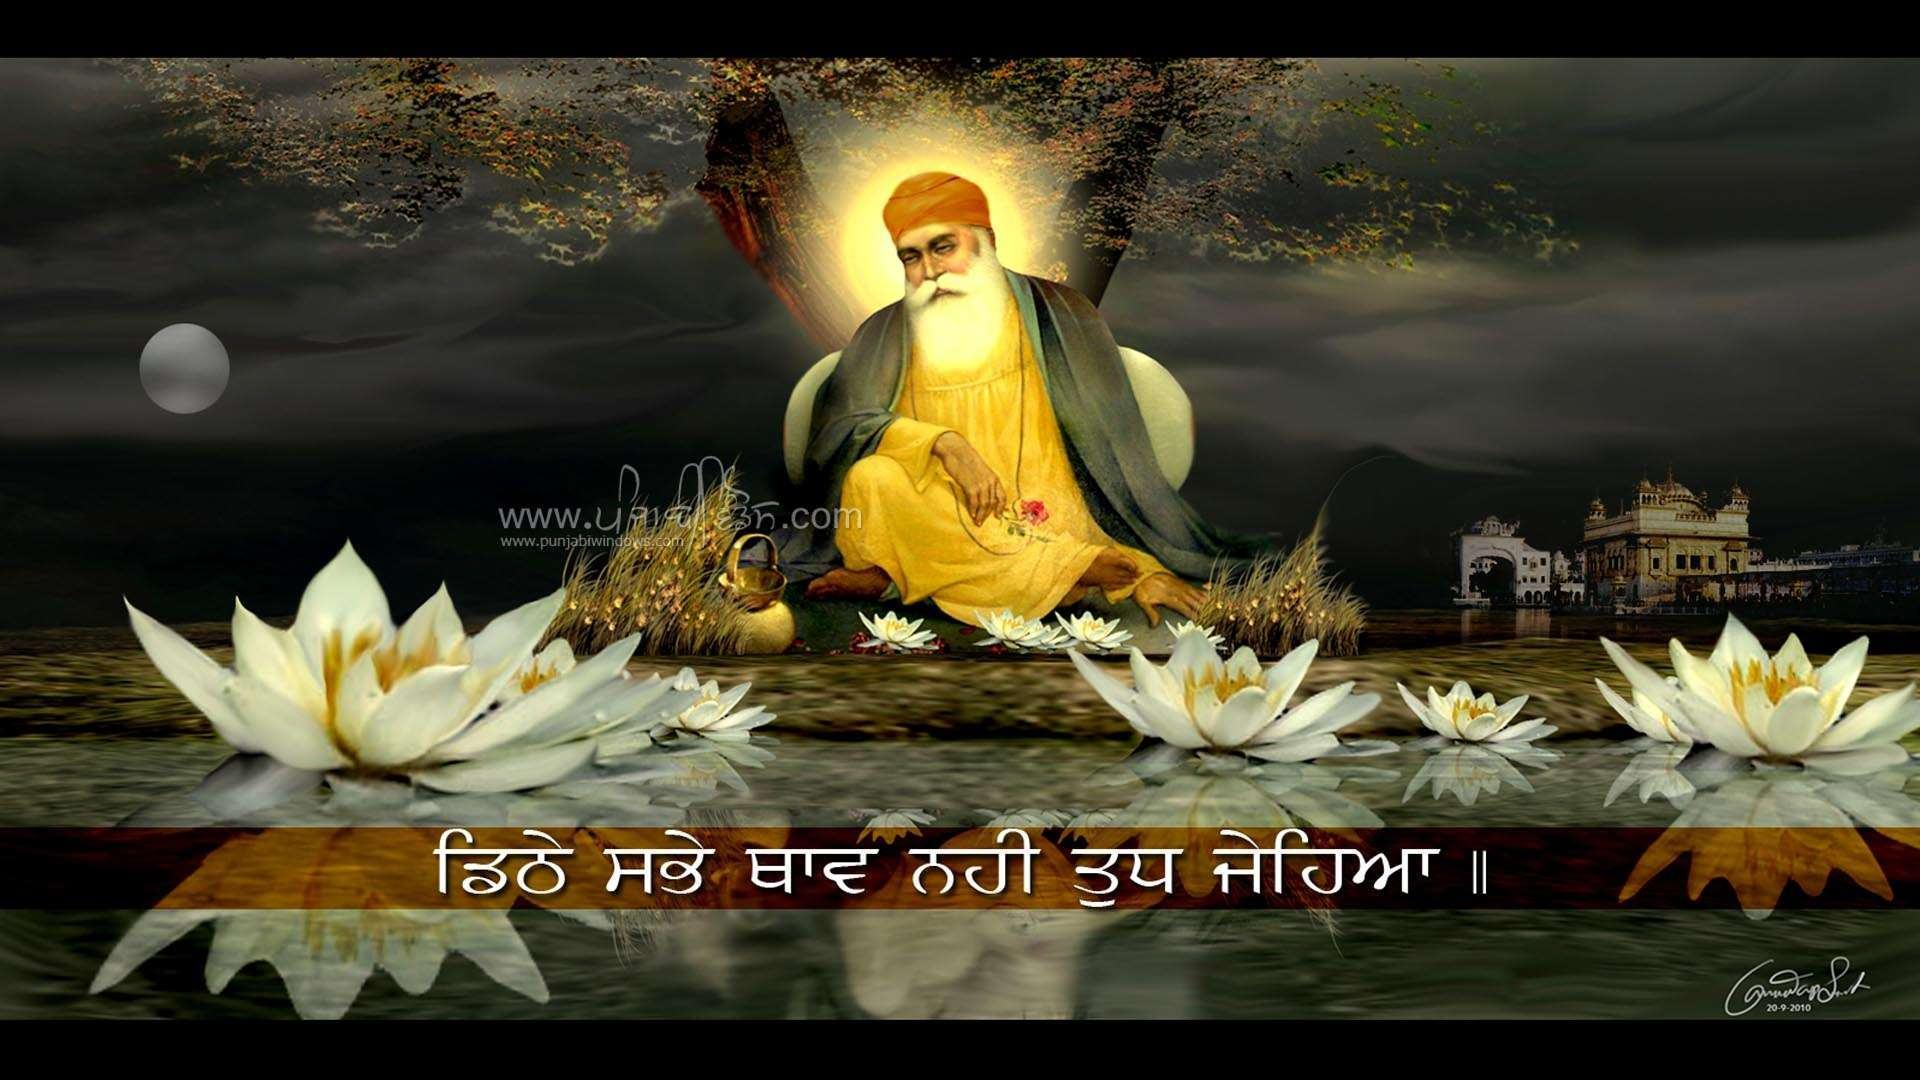 Desktop Wallpaper Hd 3d Full Screen God Sikh God Wallpapers Wallpaper Cave